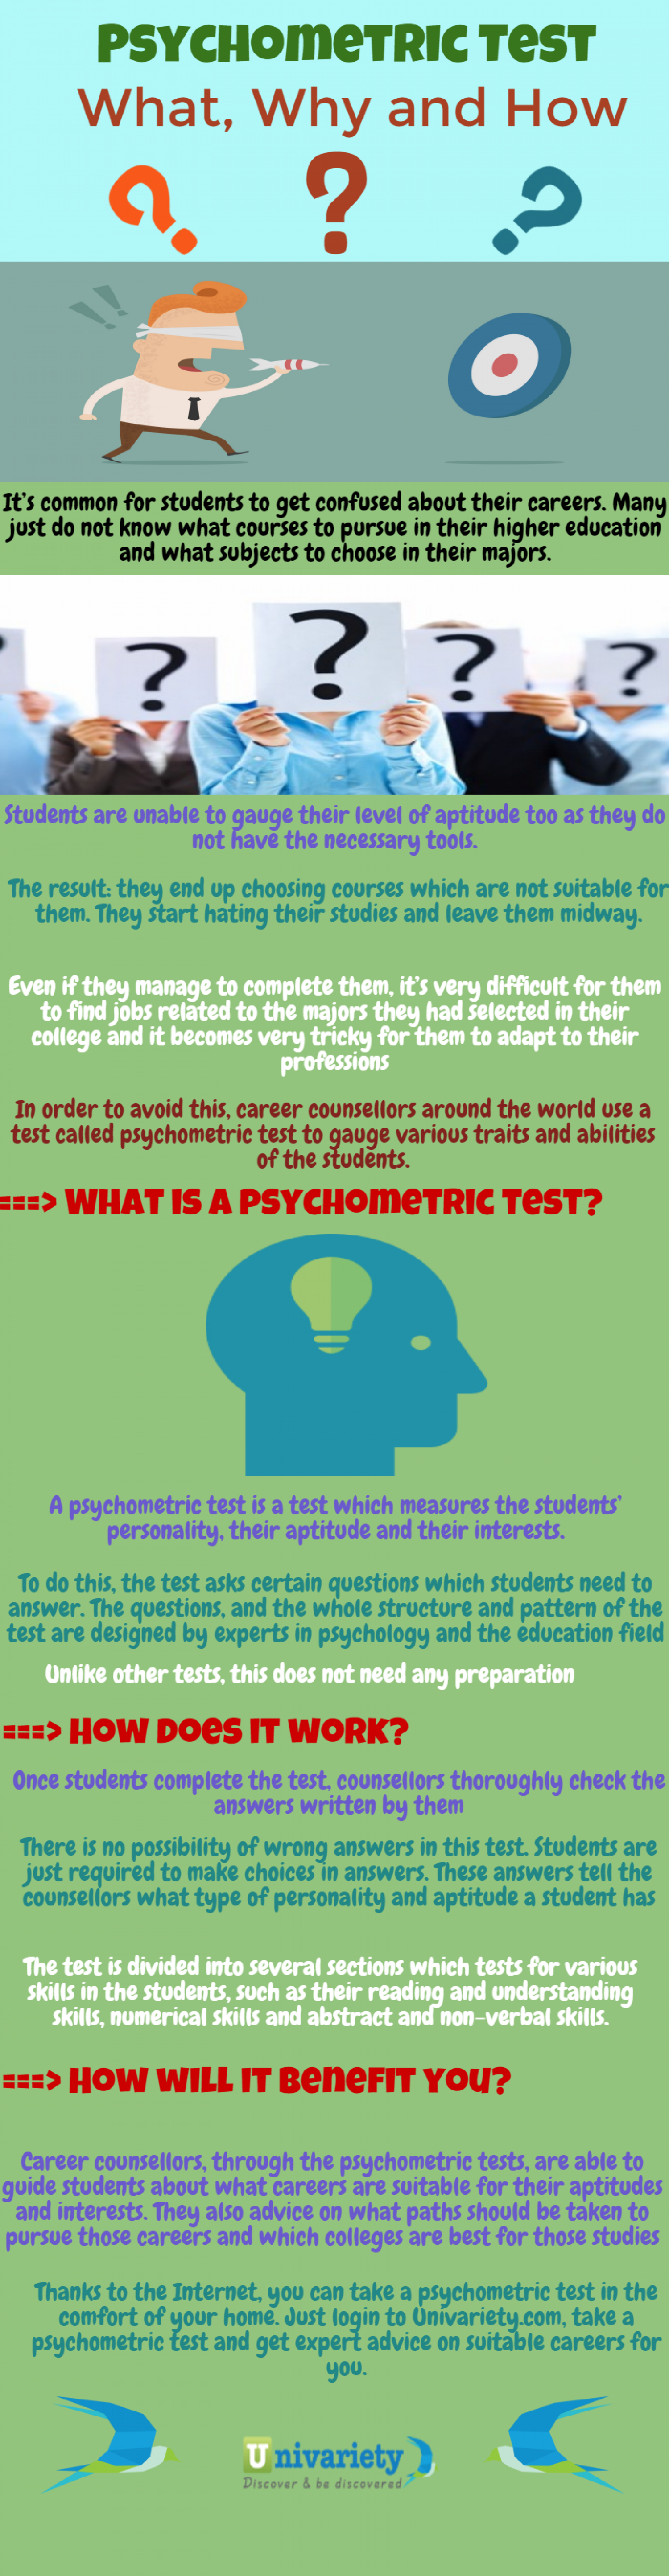 Psychometric Test: What, Why and How Infographic